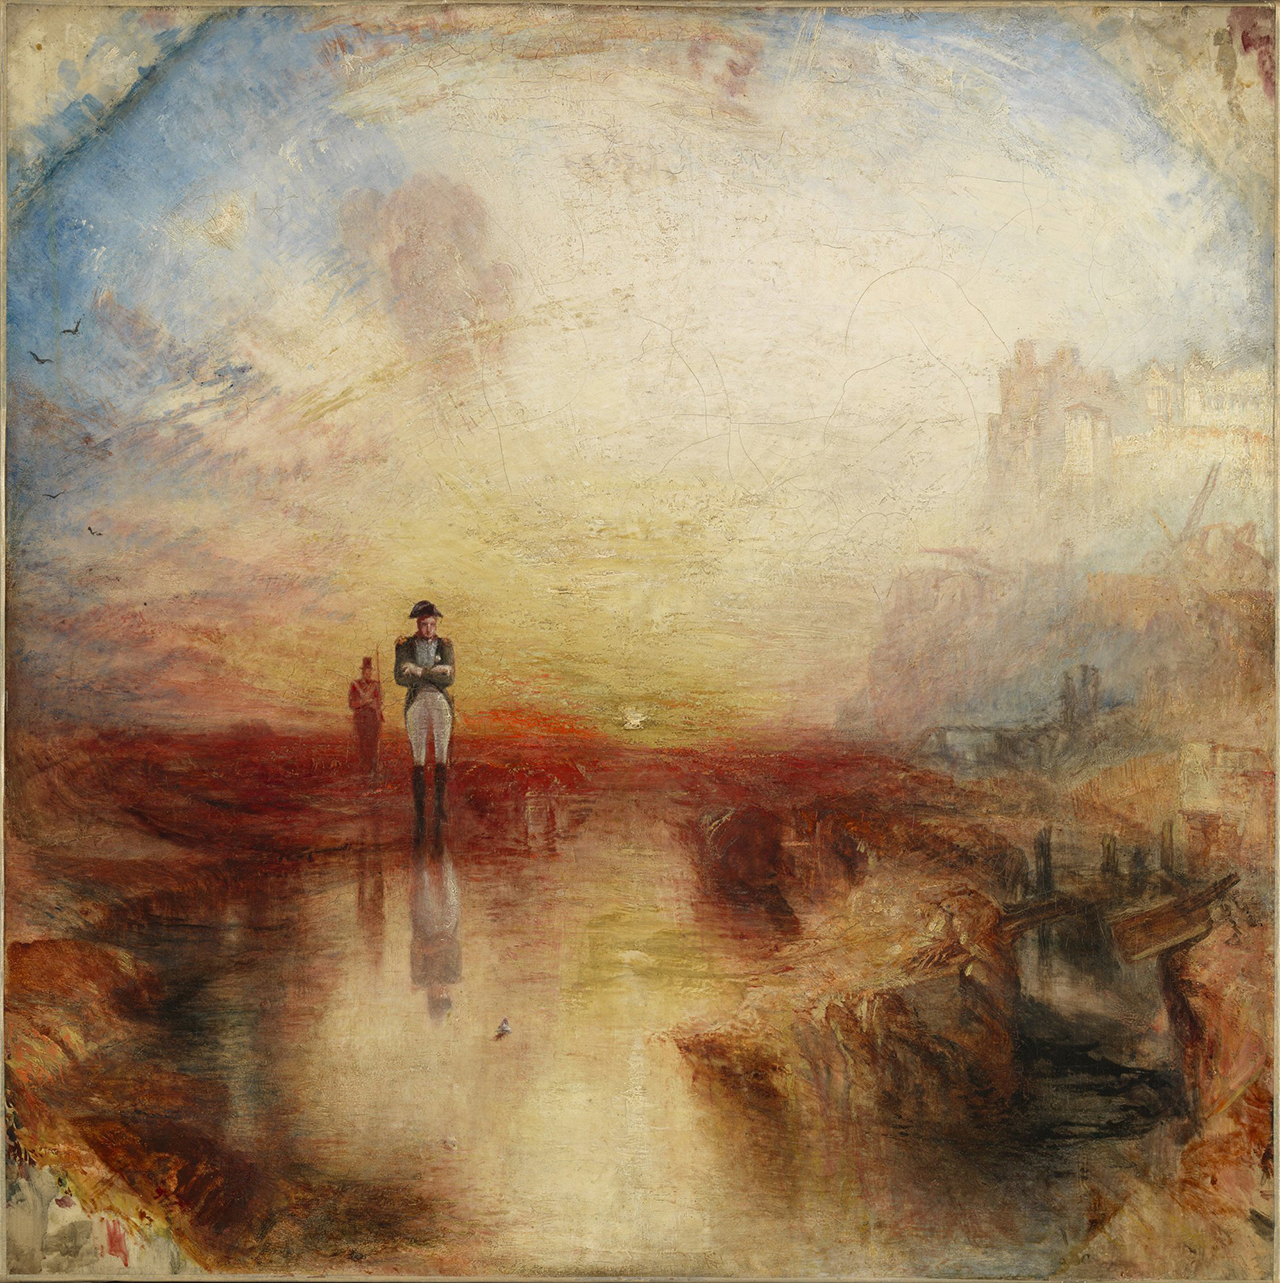 """J.M.W. Turner, """"War. The Exile and the Rock Limpet"""" (exhibited 1842), oil on canvas (Tate: Accepted by the nation as part of the Turner Bequest 1856 Photo © Tate, London 2014)"""